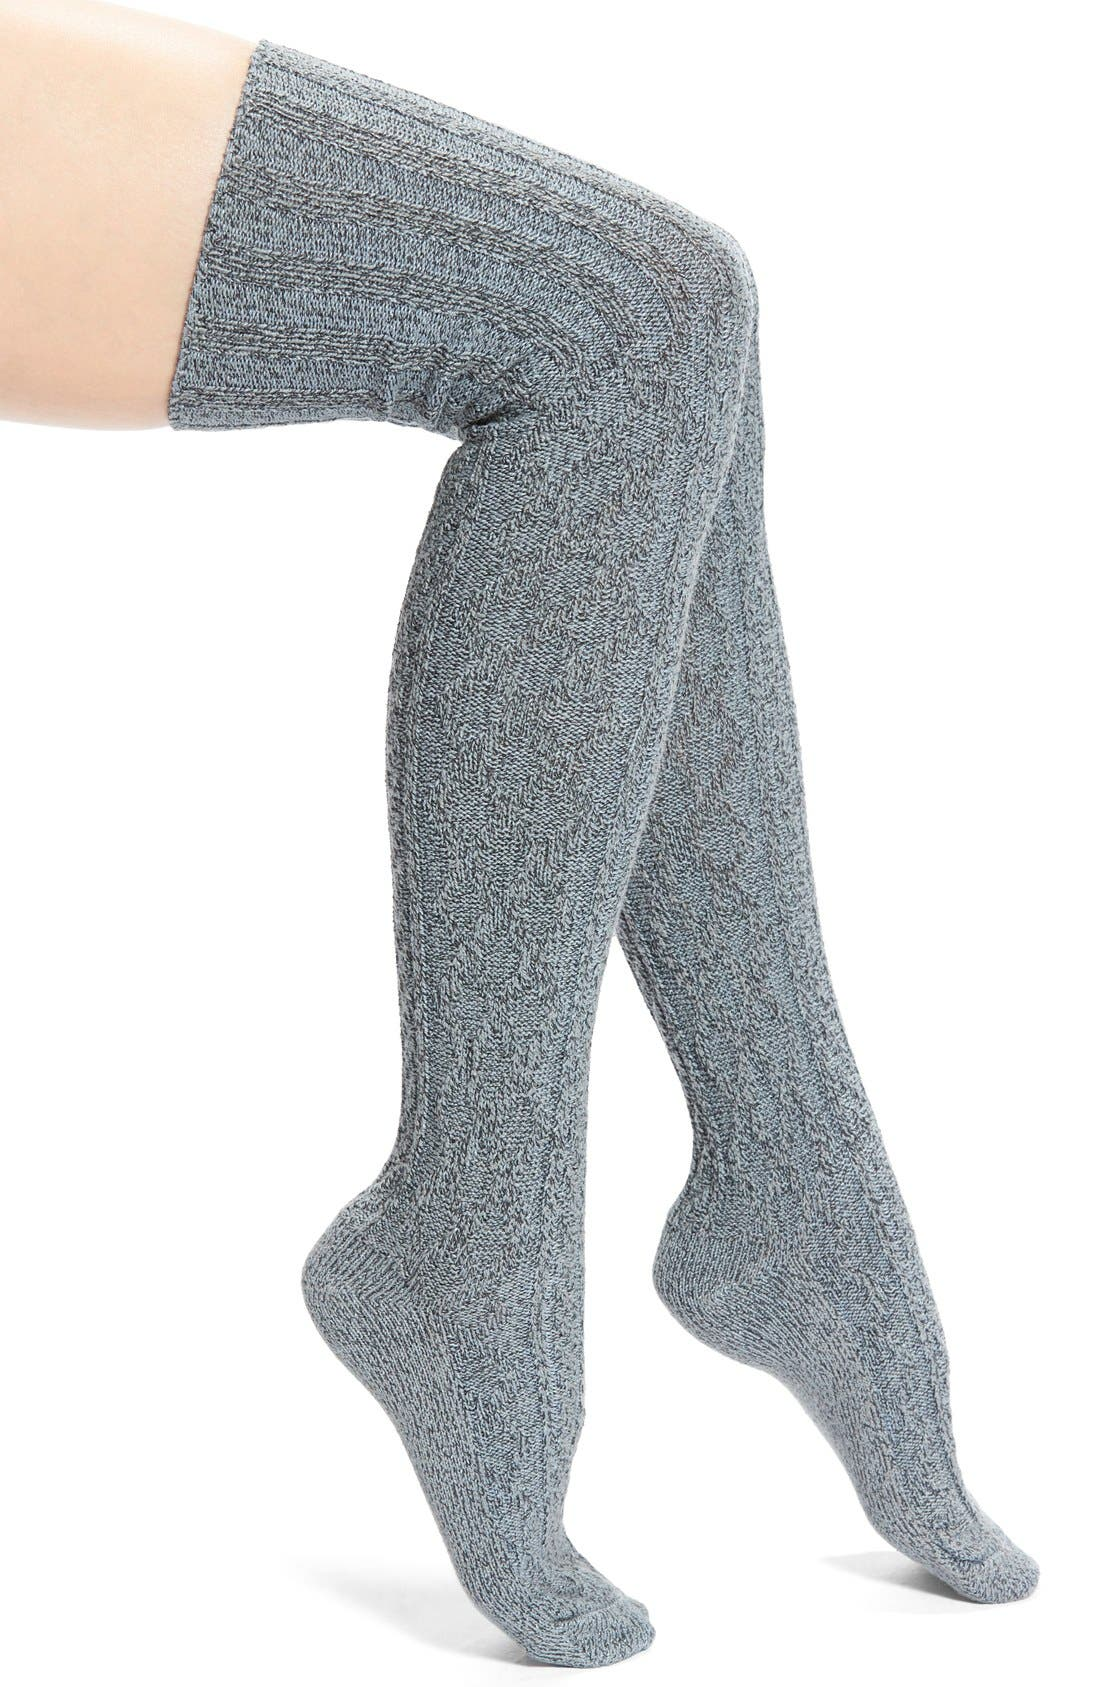 Marled Cable Knit Thigh High Socks,                             Main thumbnail 1, color,                             020